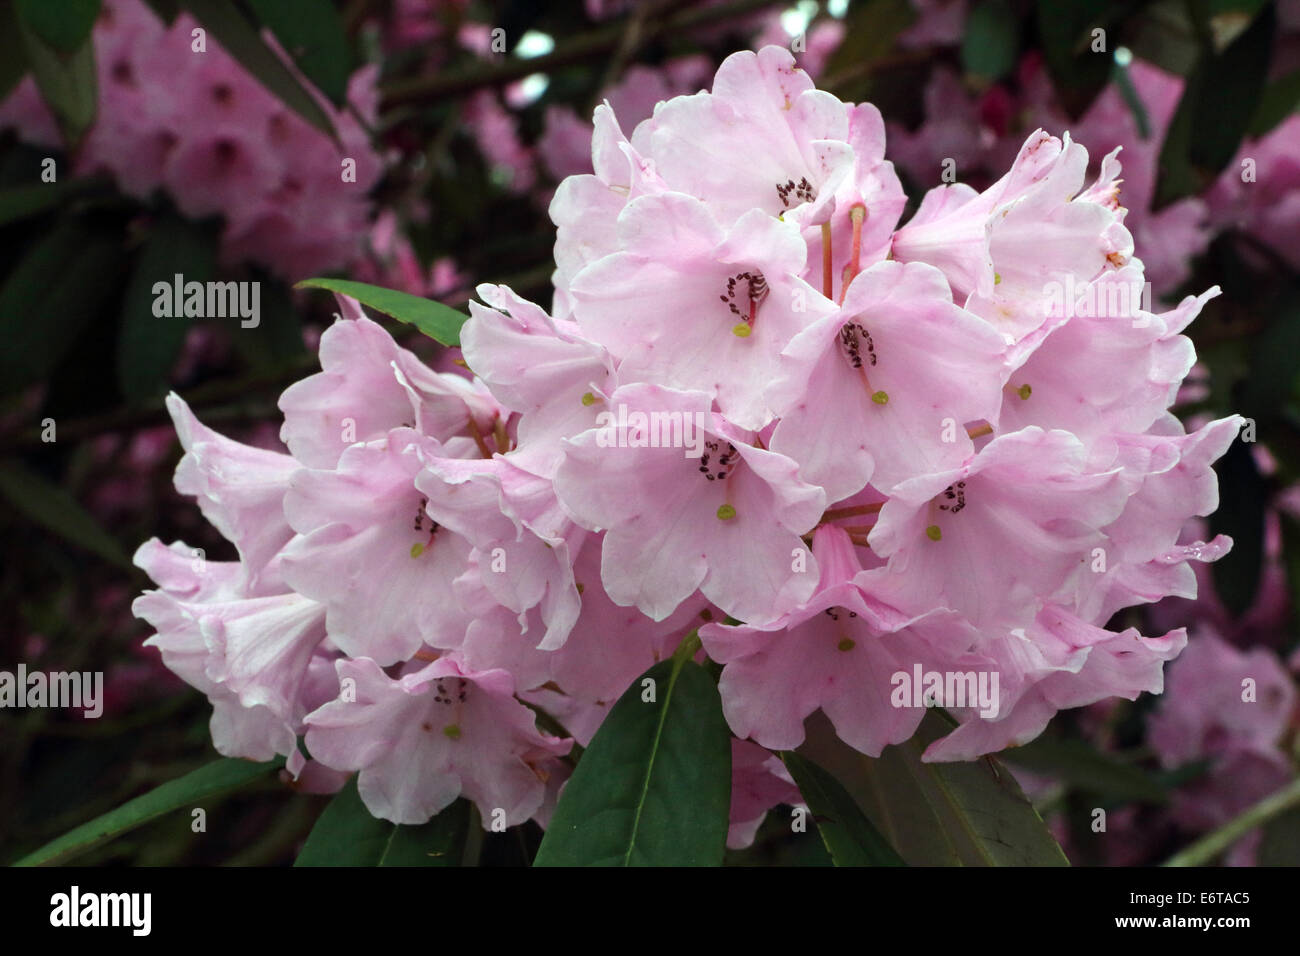 Rhododendron Argyrophyllum pink - Stock Image